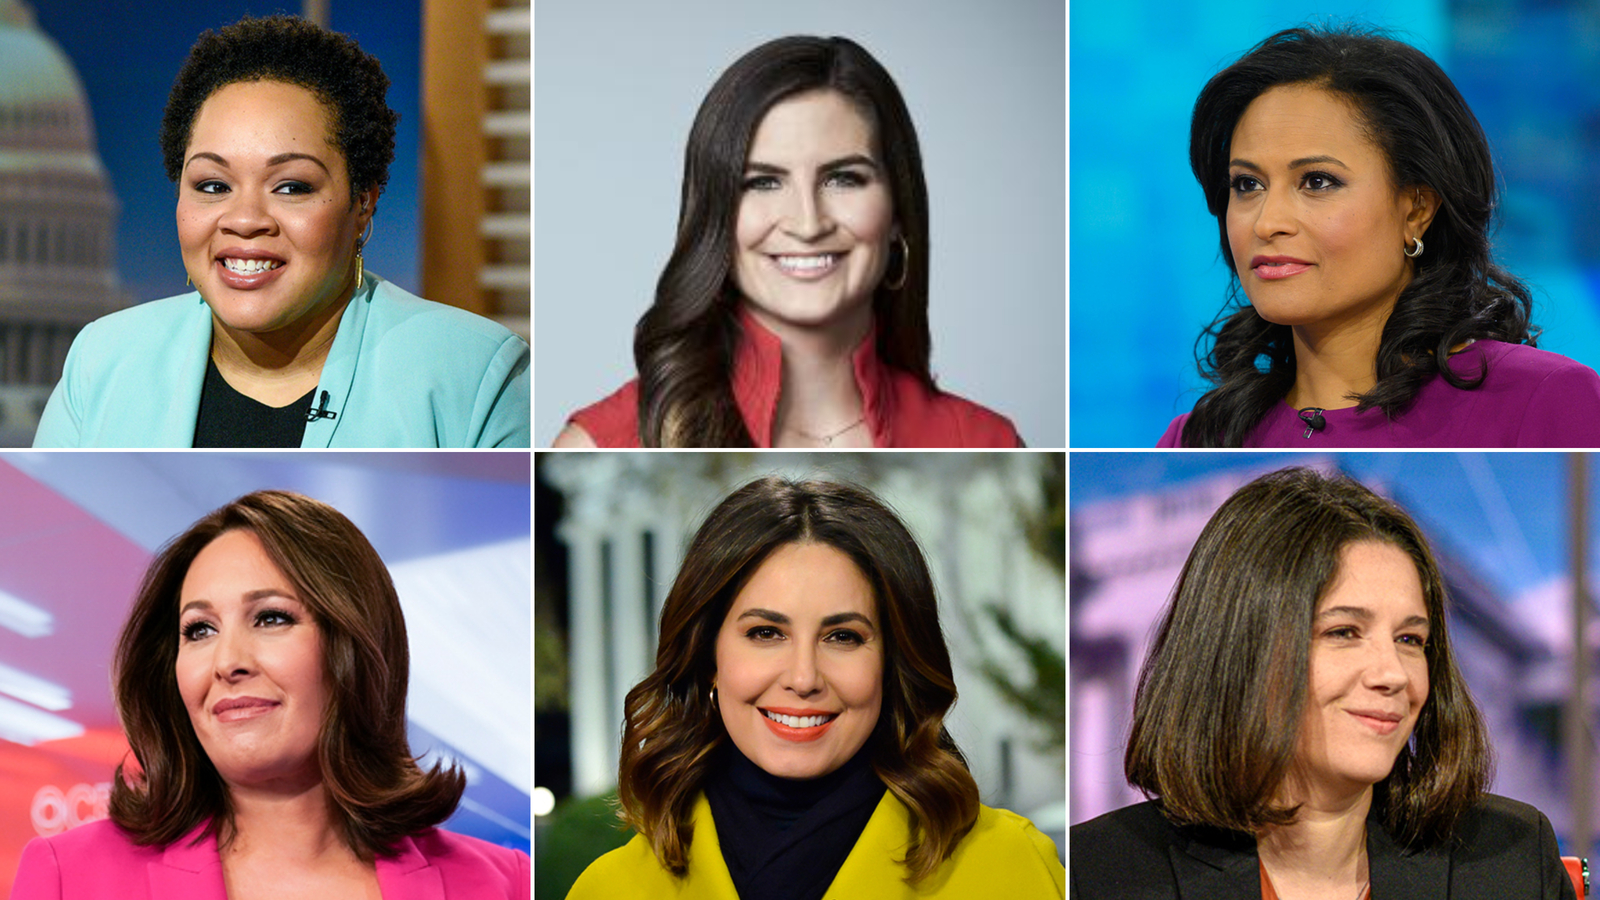 Major news outlets name women to lead coverage of the Biden White House